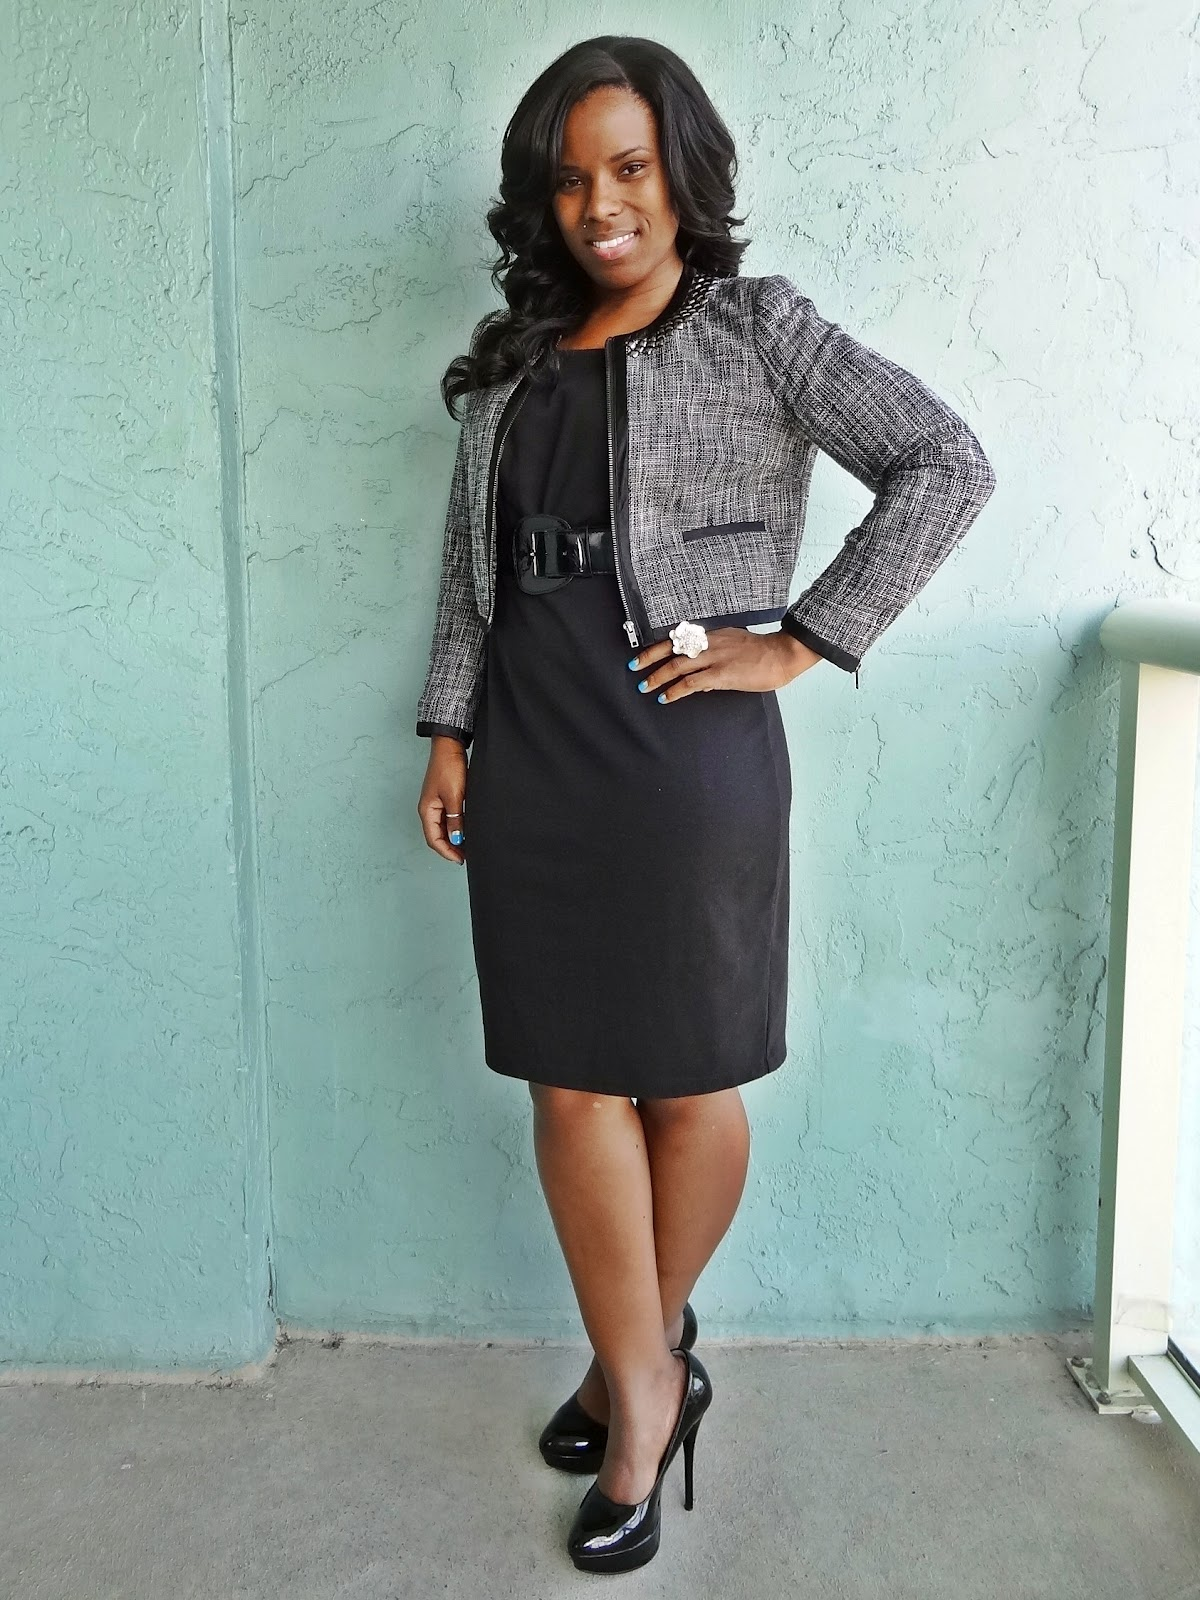 Show me your favorite business casual dress+jacket/cardigan combo ...